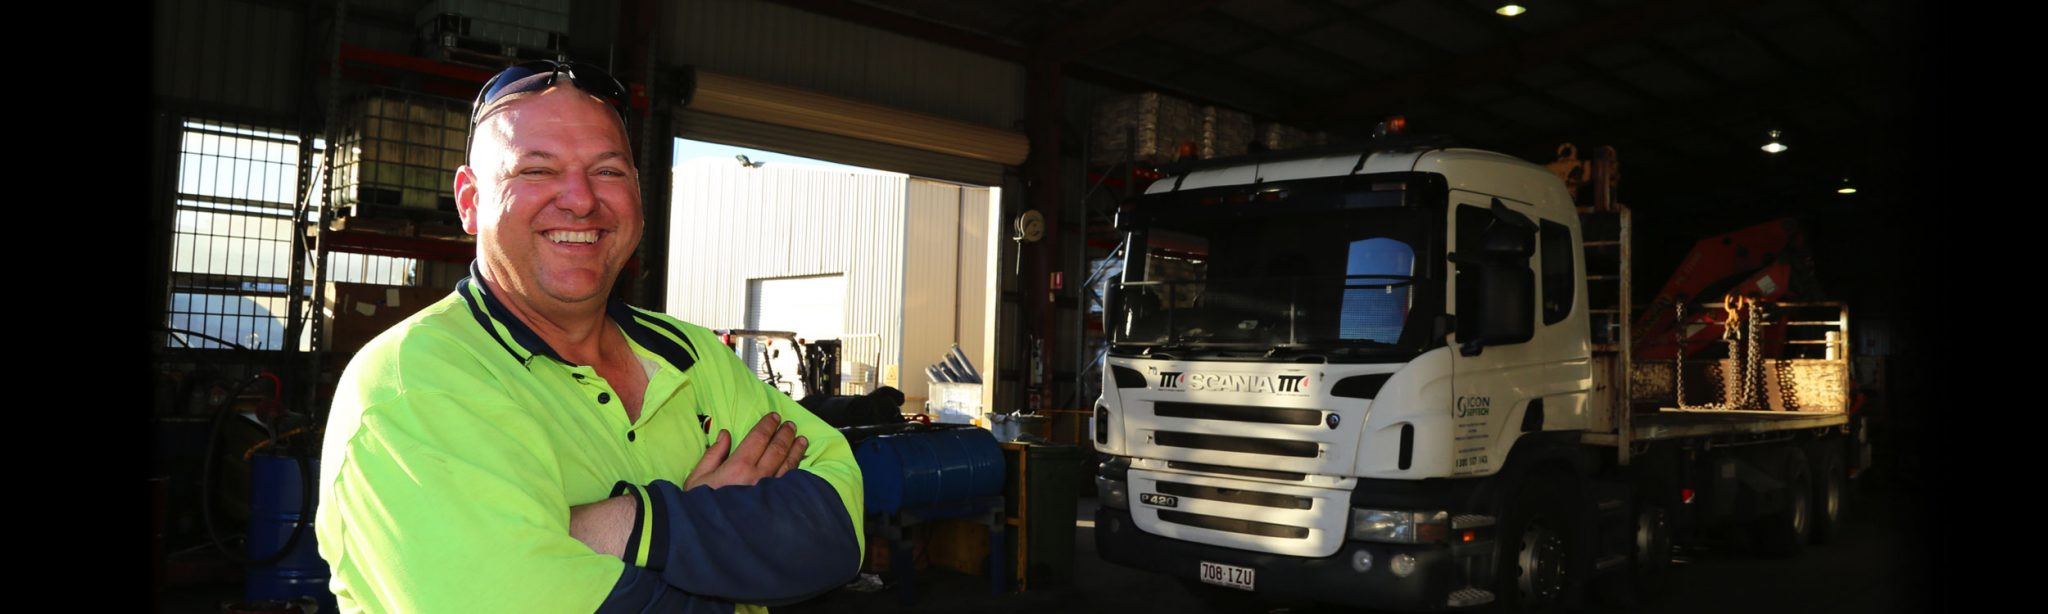 Brisbane Heavy Haulage - Team Transport & Logistics - Our Team